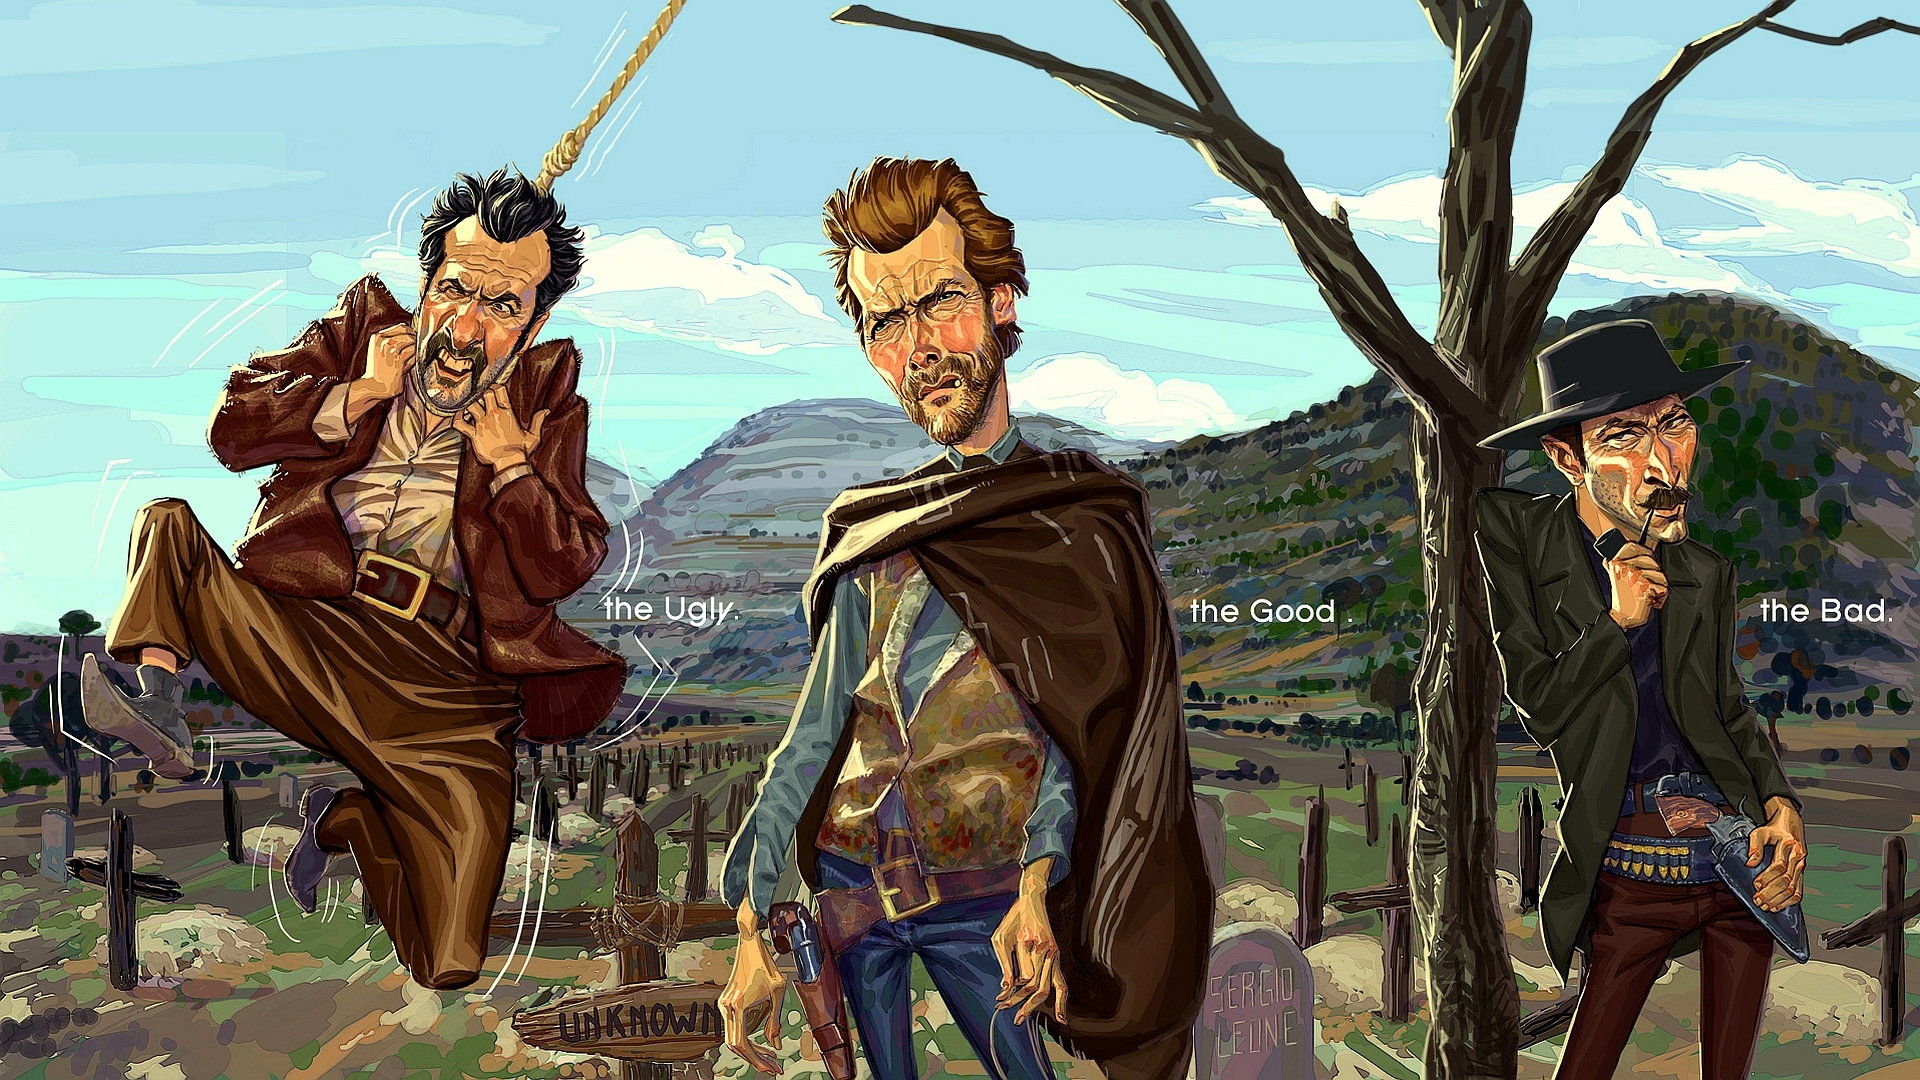 Wallpaper Of The Good The Bad And The Ugly Clint Eastwood